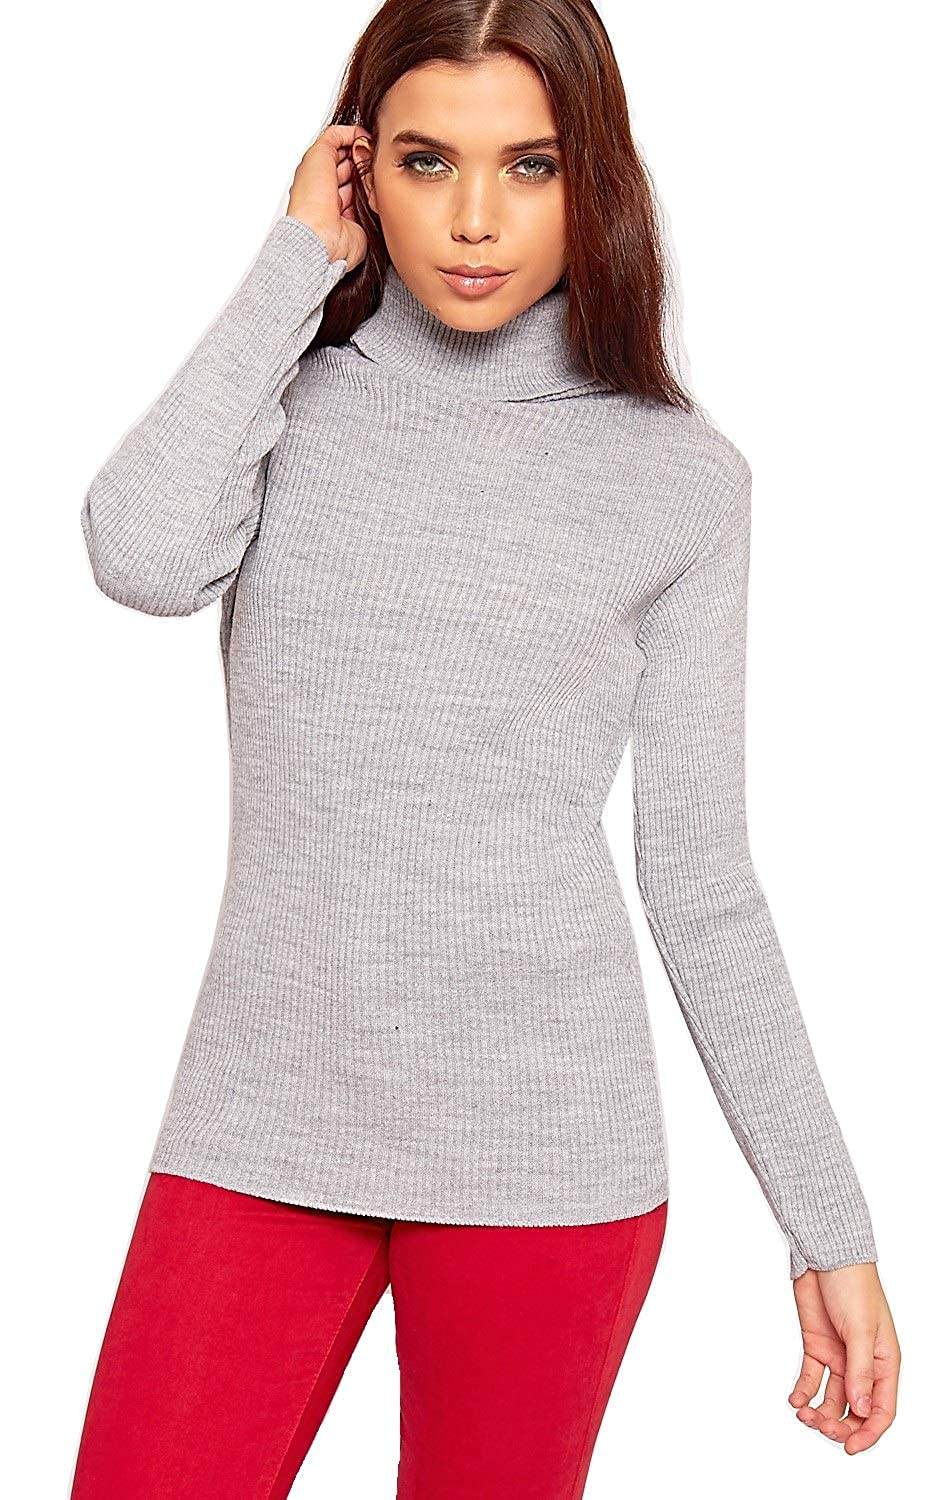 Crazy Girls Womens High Rolled Polo Neck Ribbed Knitted Jumper Top Ladies New Rib Knit Sweater Tops